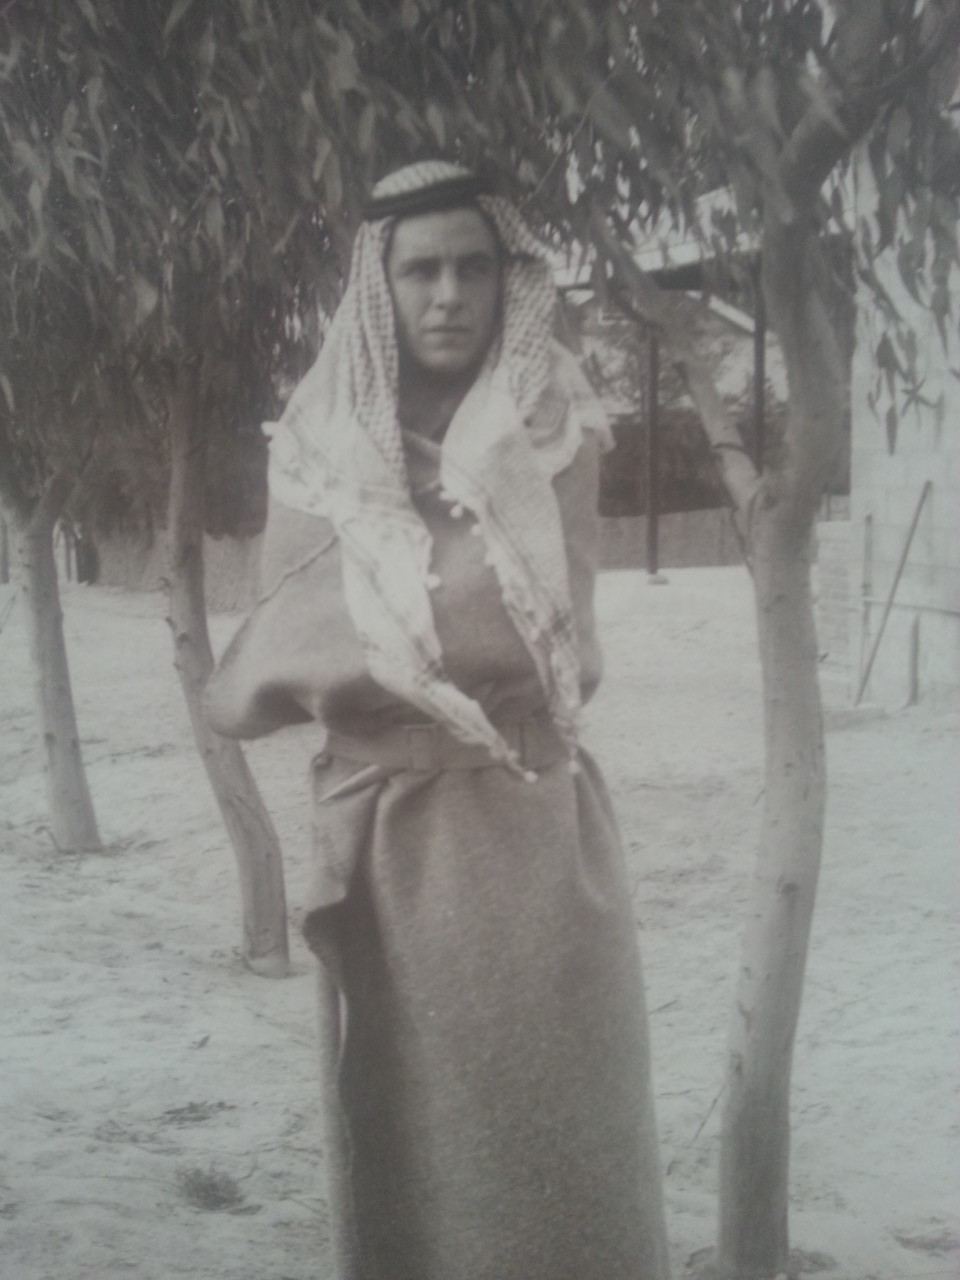 unknown Arab or is a fusilier